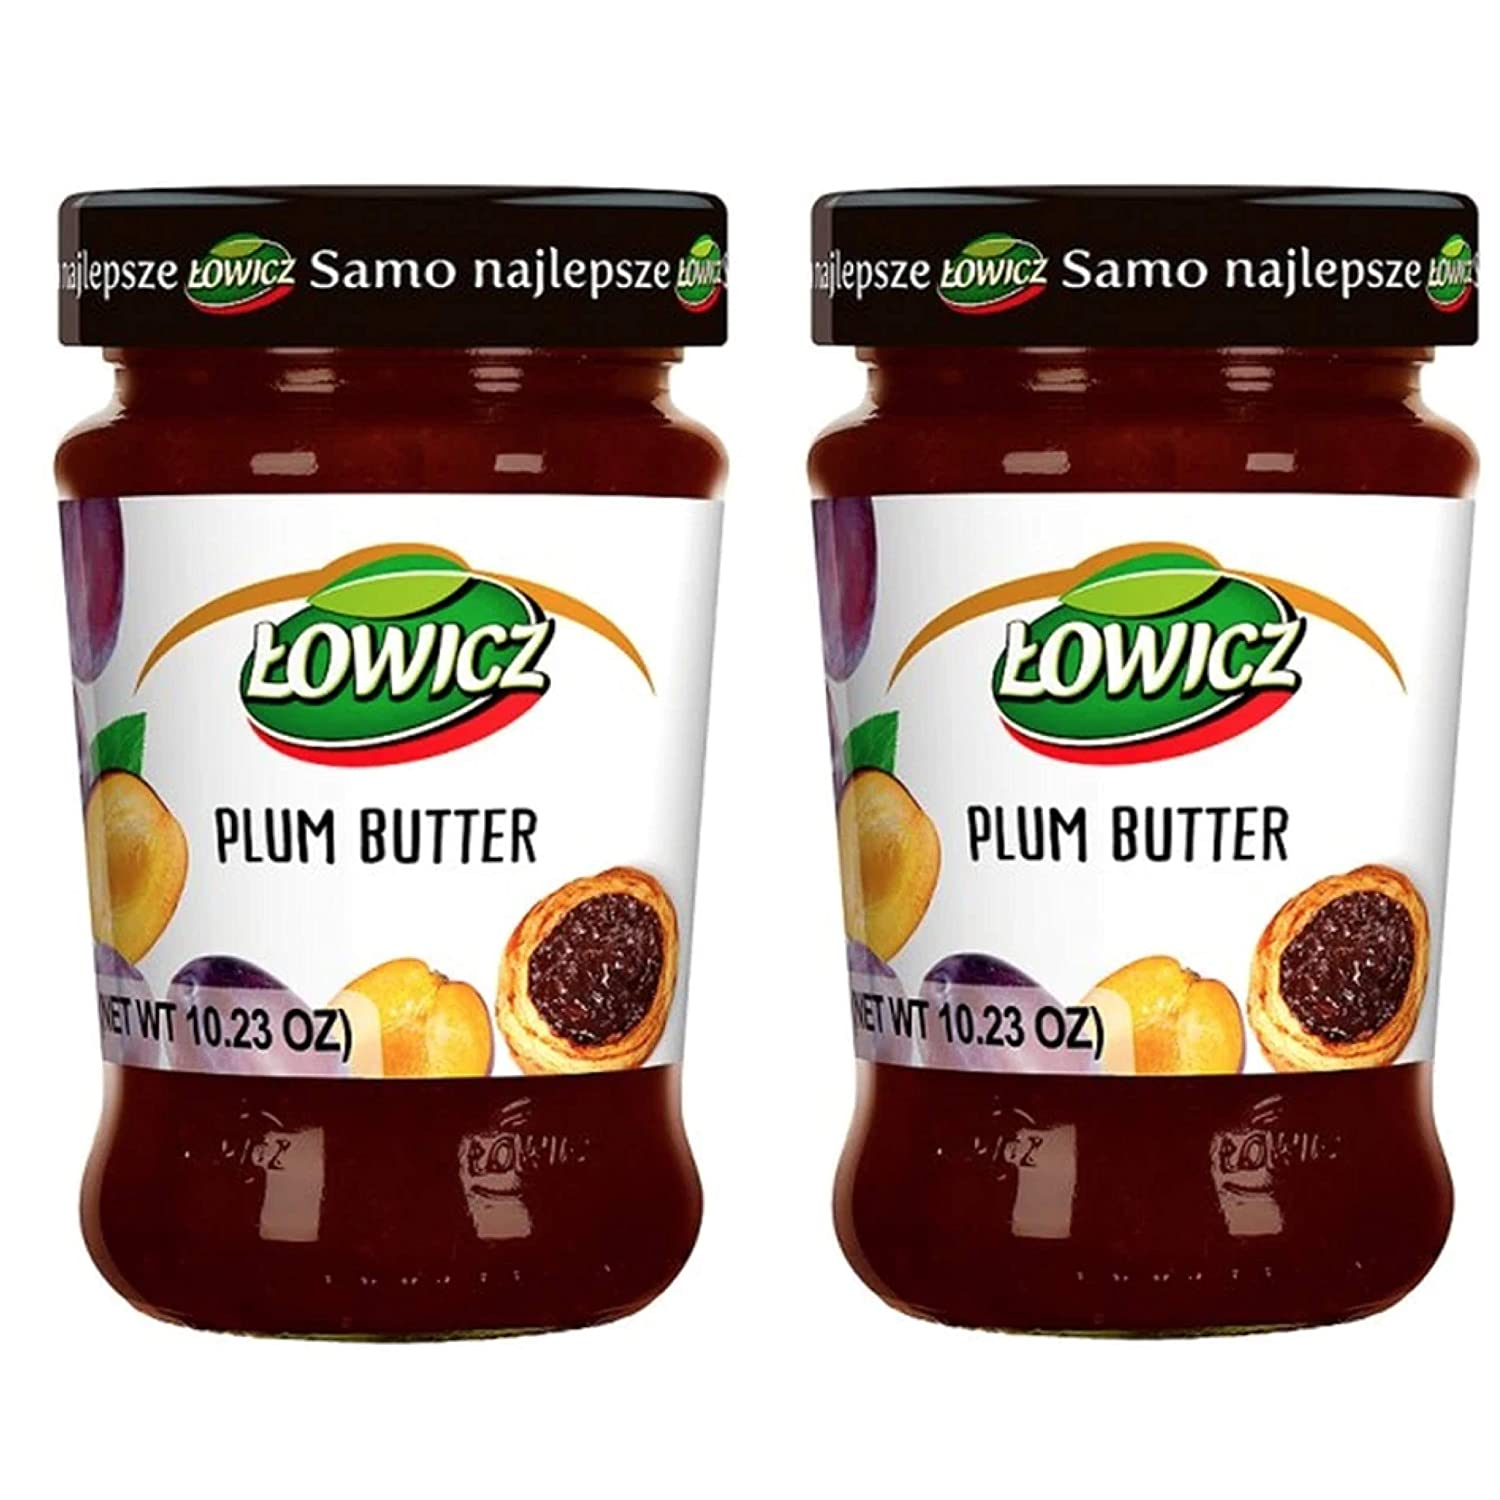 Lowicz Powidla Plum Butter 280 g (Pack of 2). Product from Poland.